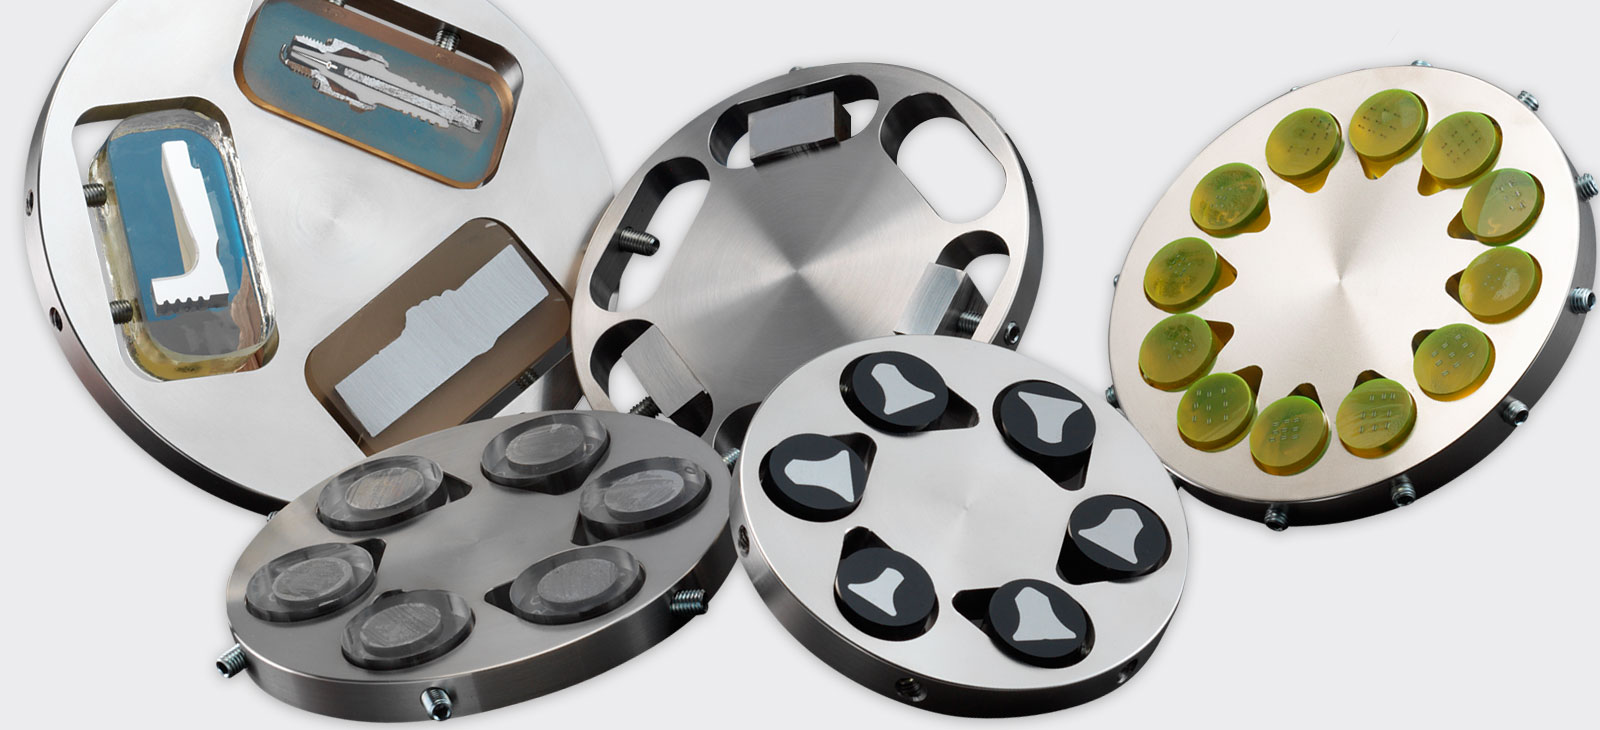 Grinding and polishing accessories